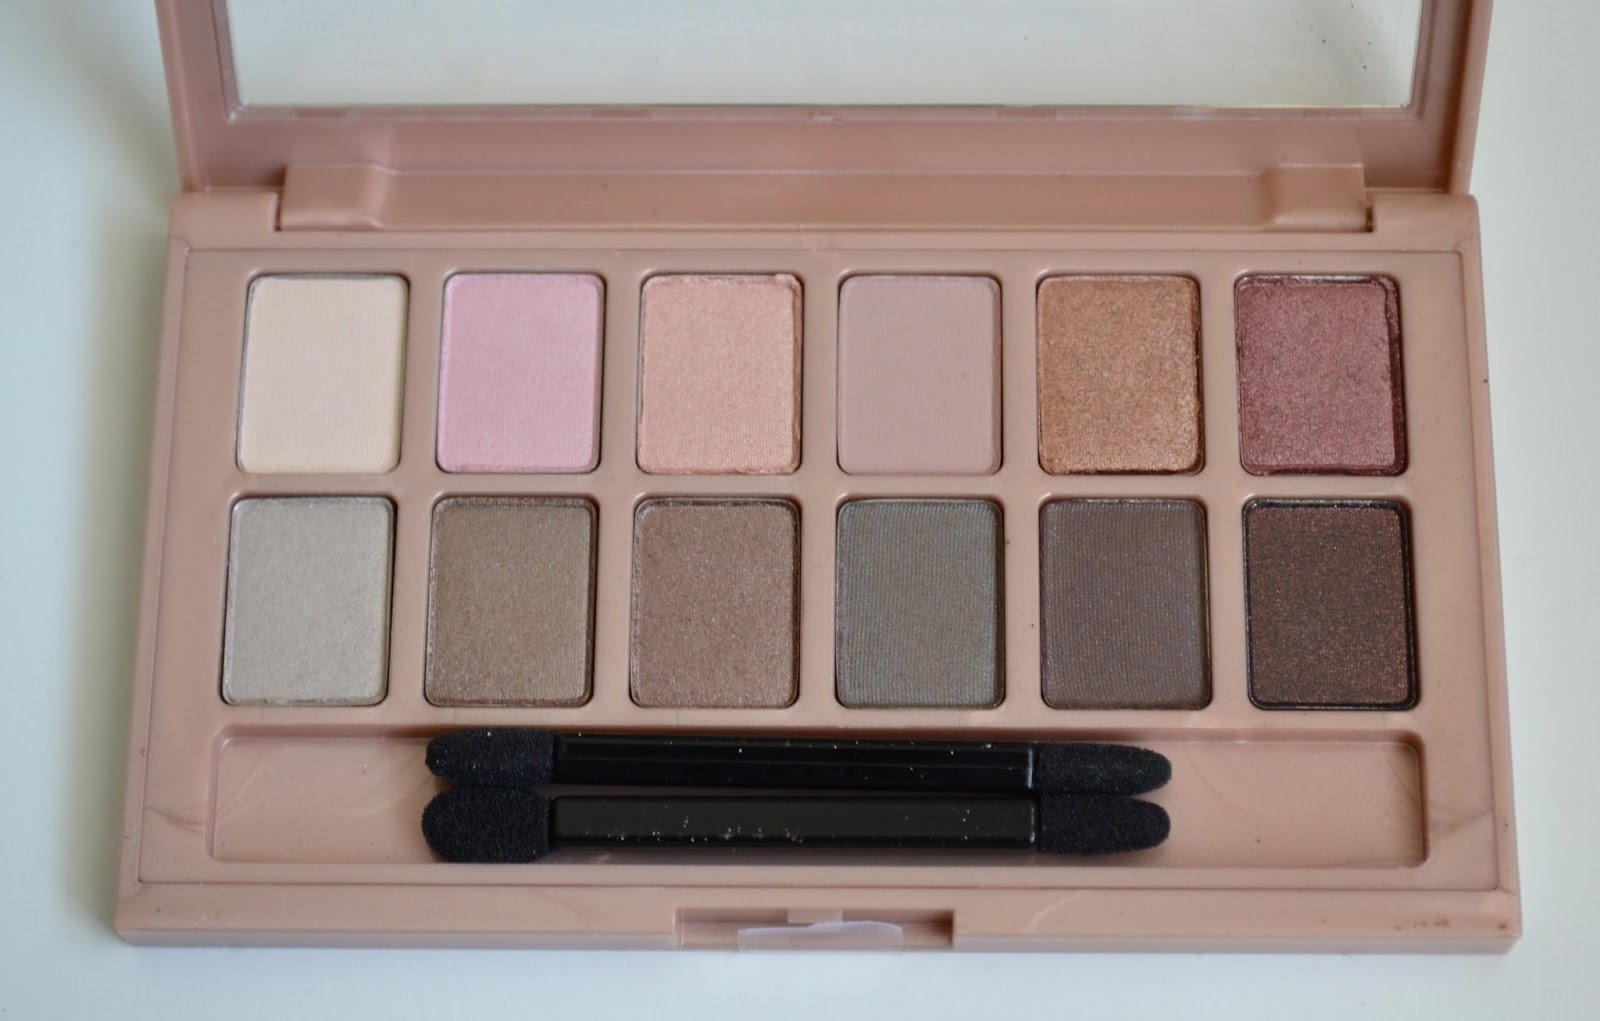 The blushed nudes maybelline review pic 81